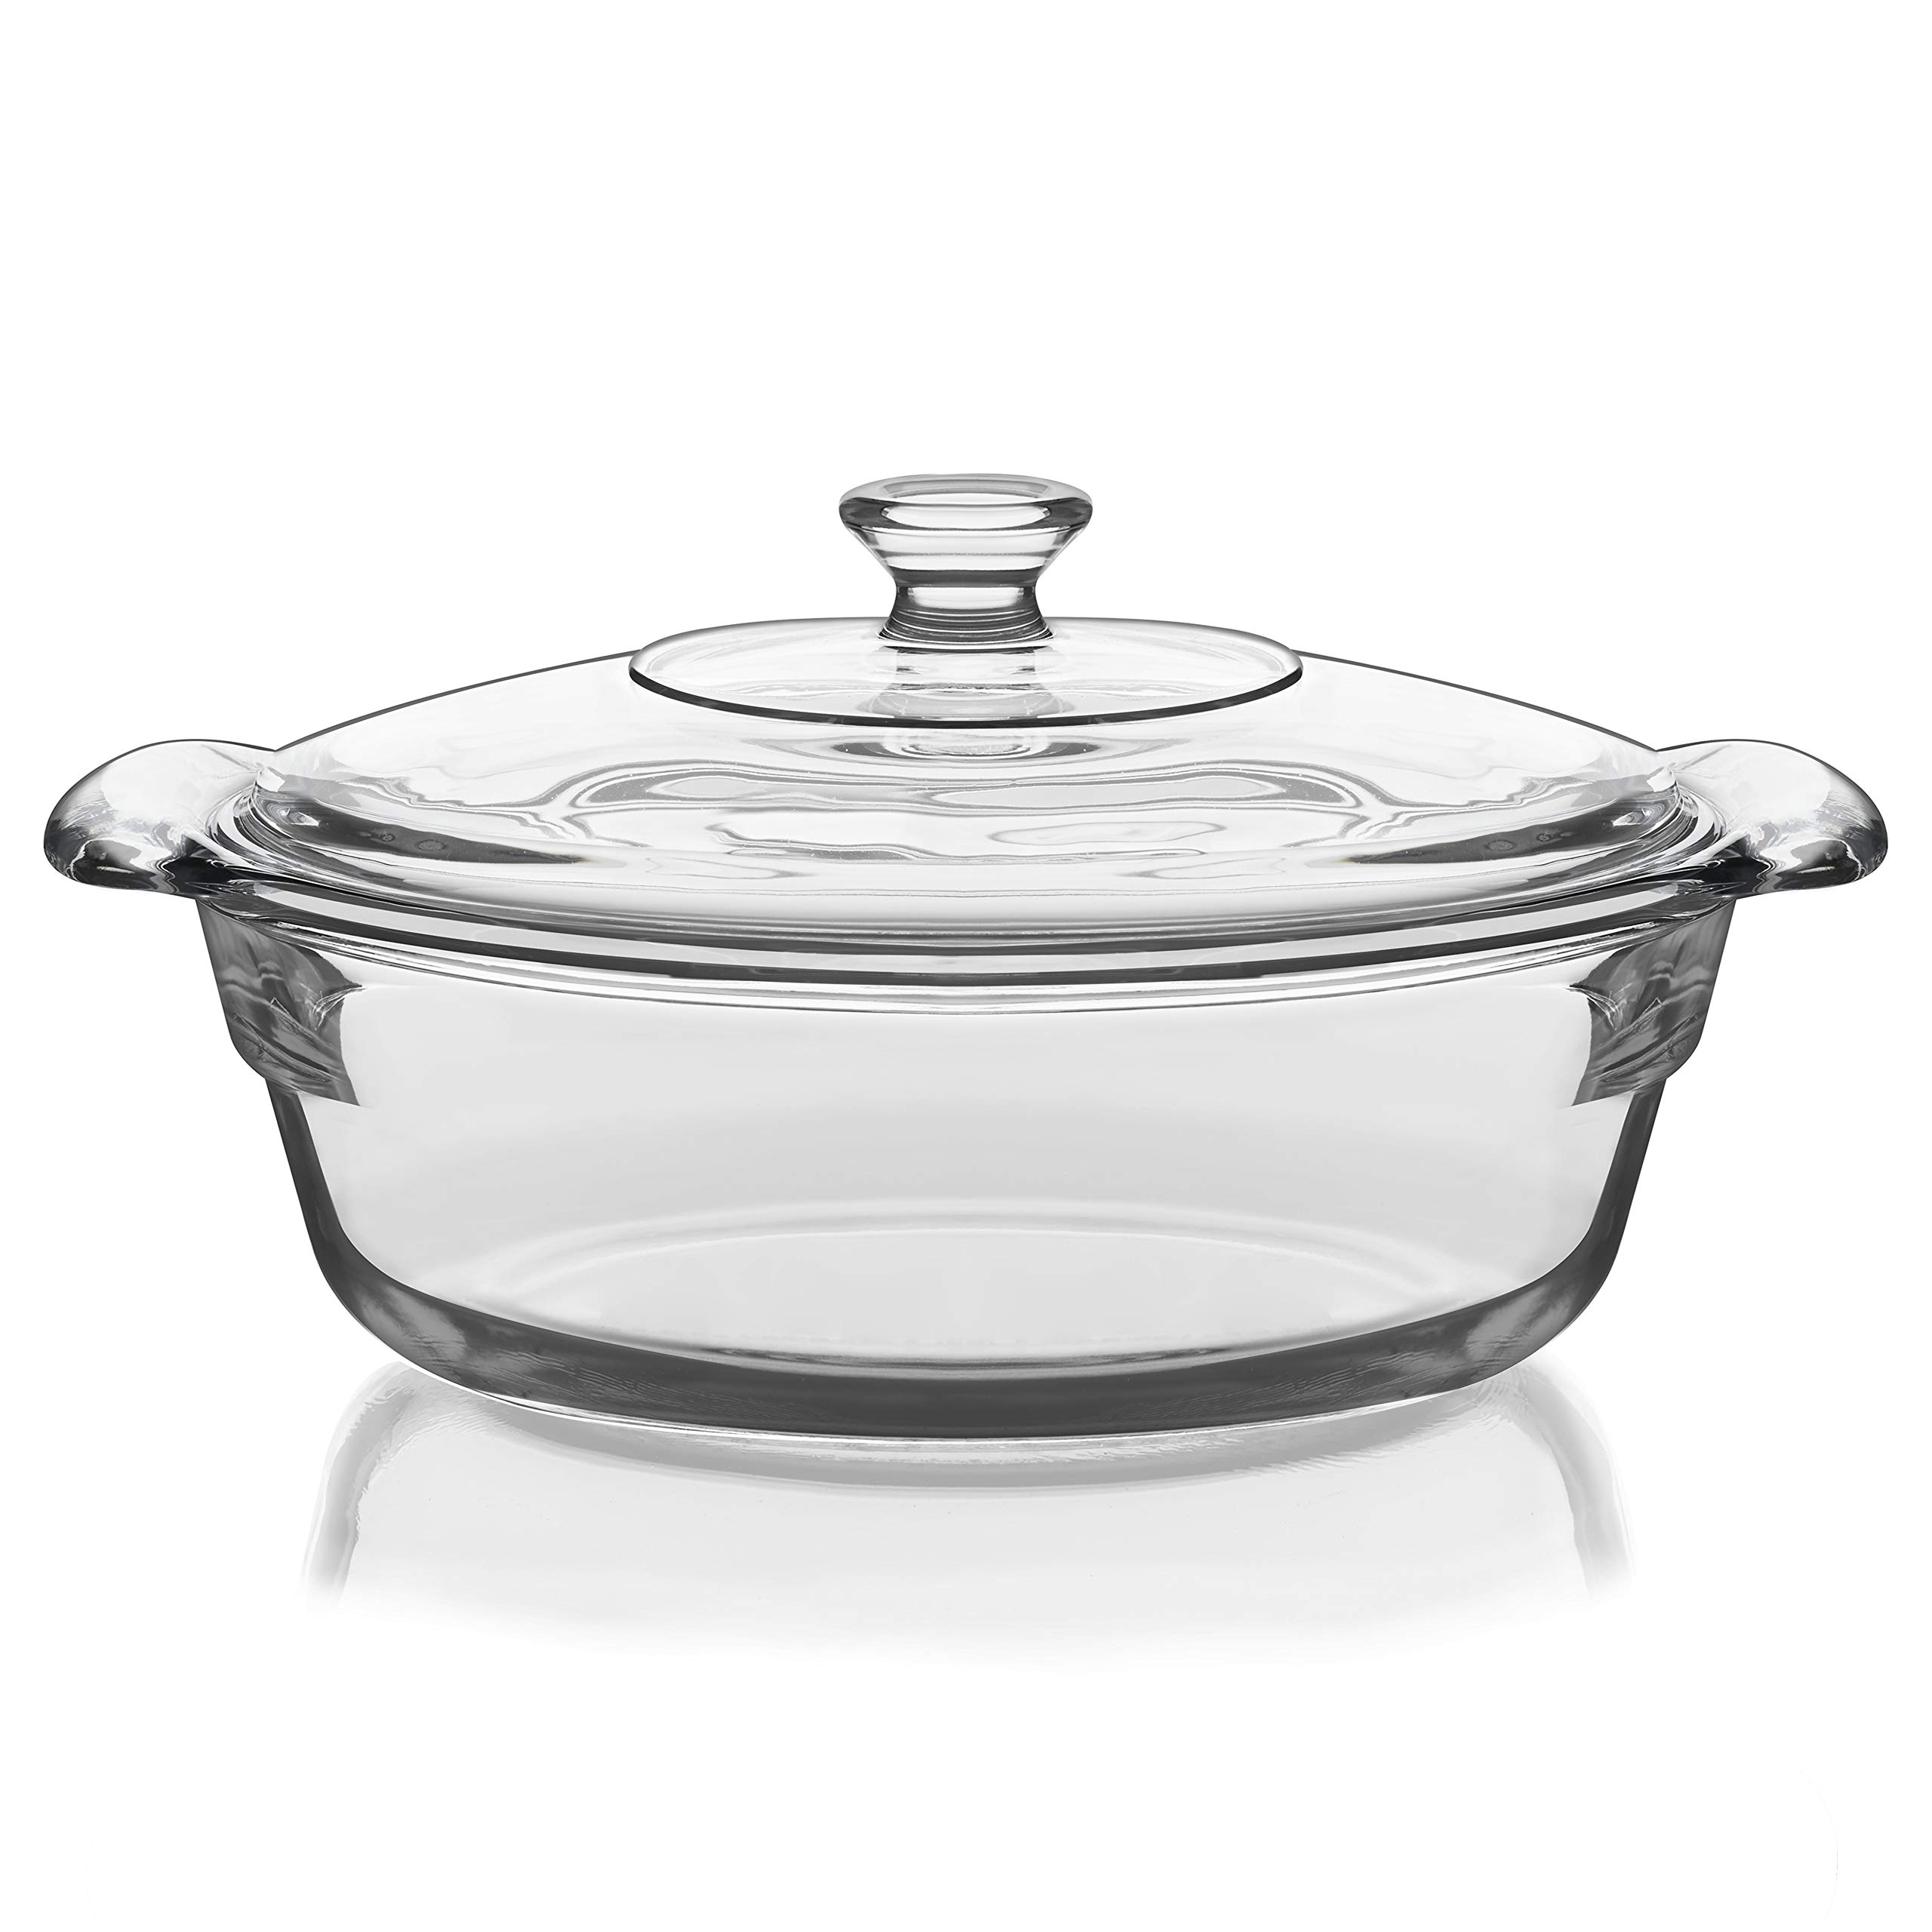 Libbey Baker's Premium 6-Piece Glass Casserole Baking Dish Set with 2 Covers by Libbey (Image #4)